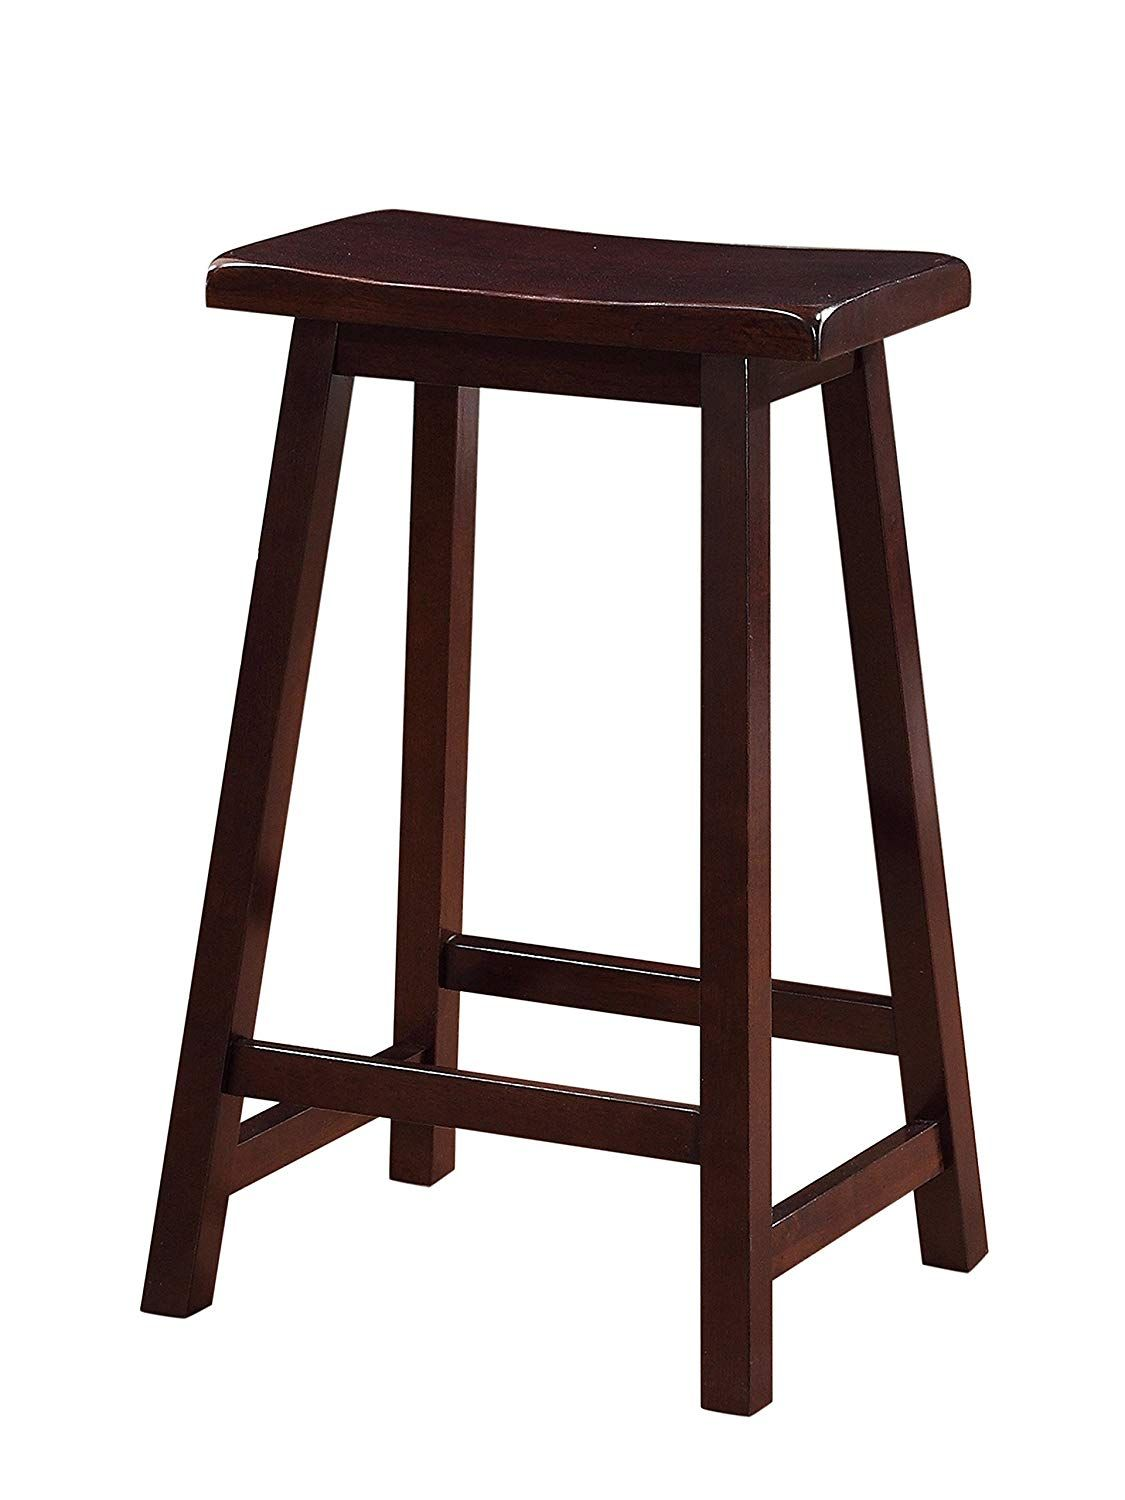 Linon Home Saddle Stool 24 Inch In 2020 Brown Bar Stools High